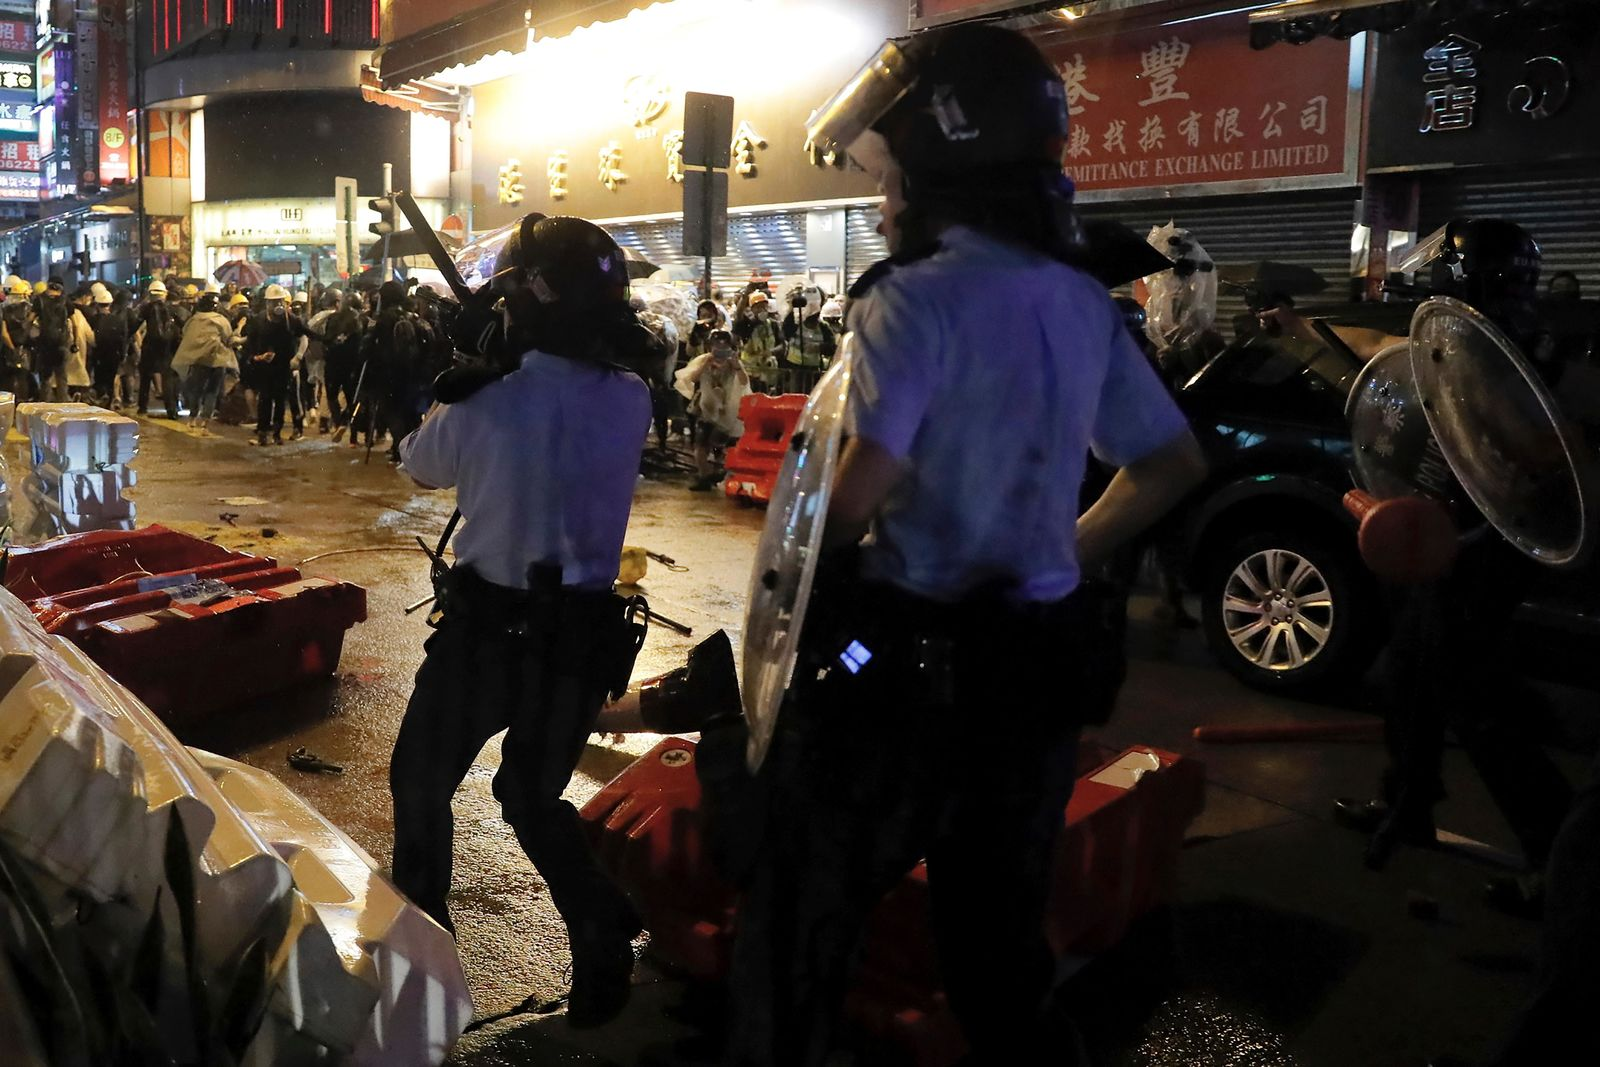 A policeman's gun was dropped on the floor, left, after clashed with demonstrators on a street during a protest in Hong Kong on Sunday, Aug. 25, 2019.{ } (AP Photo/Kin Cheung)